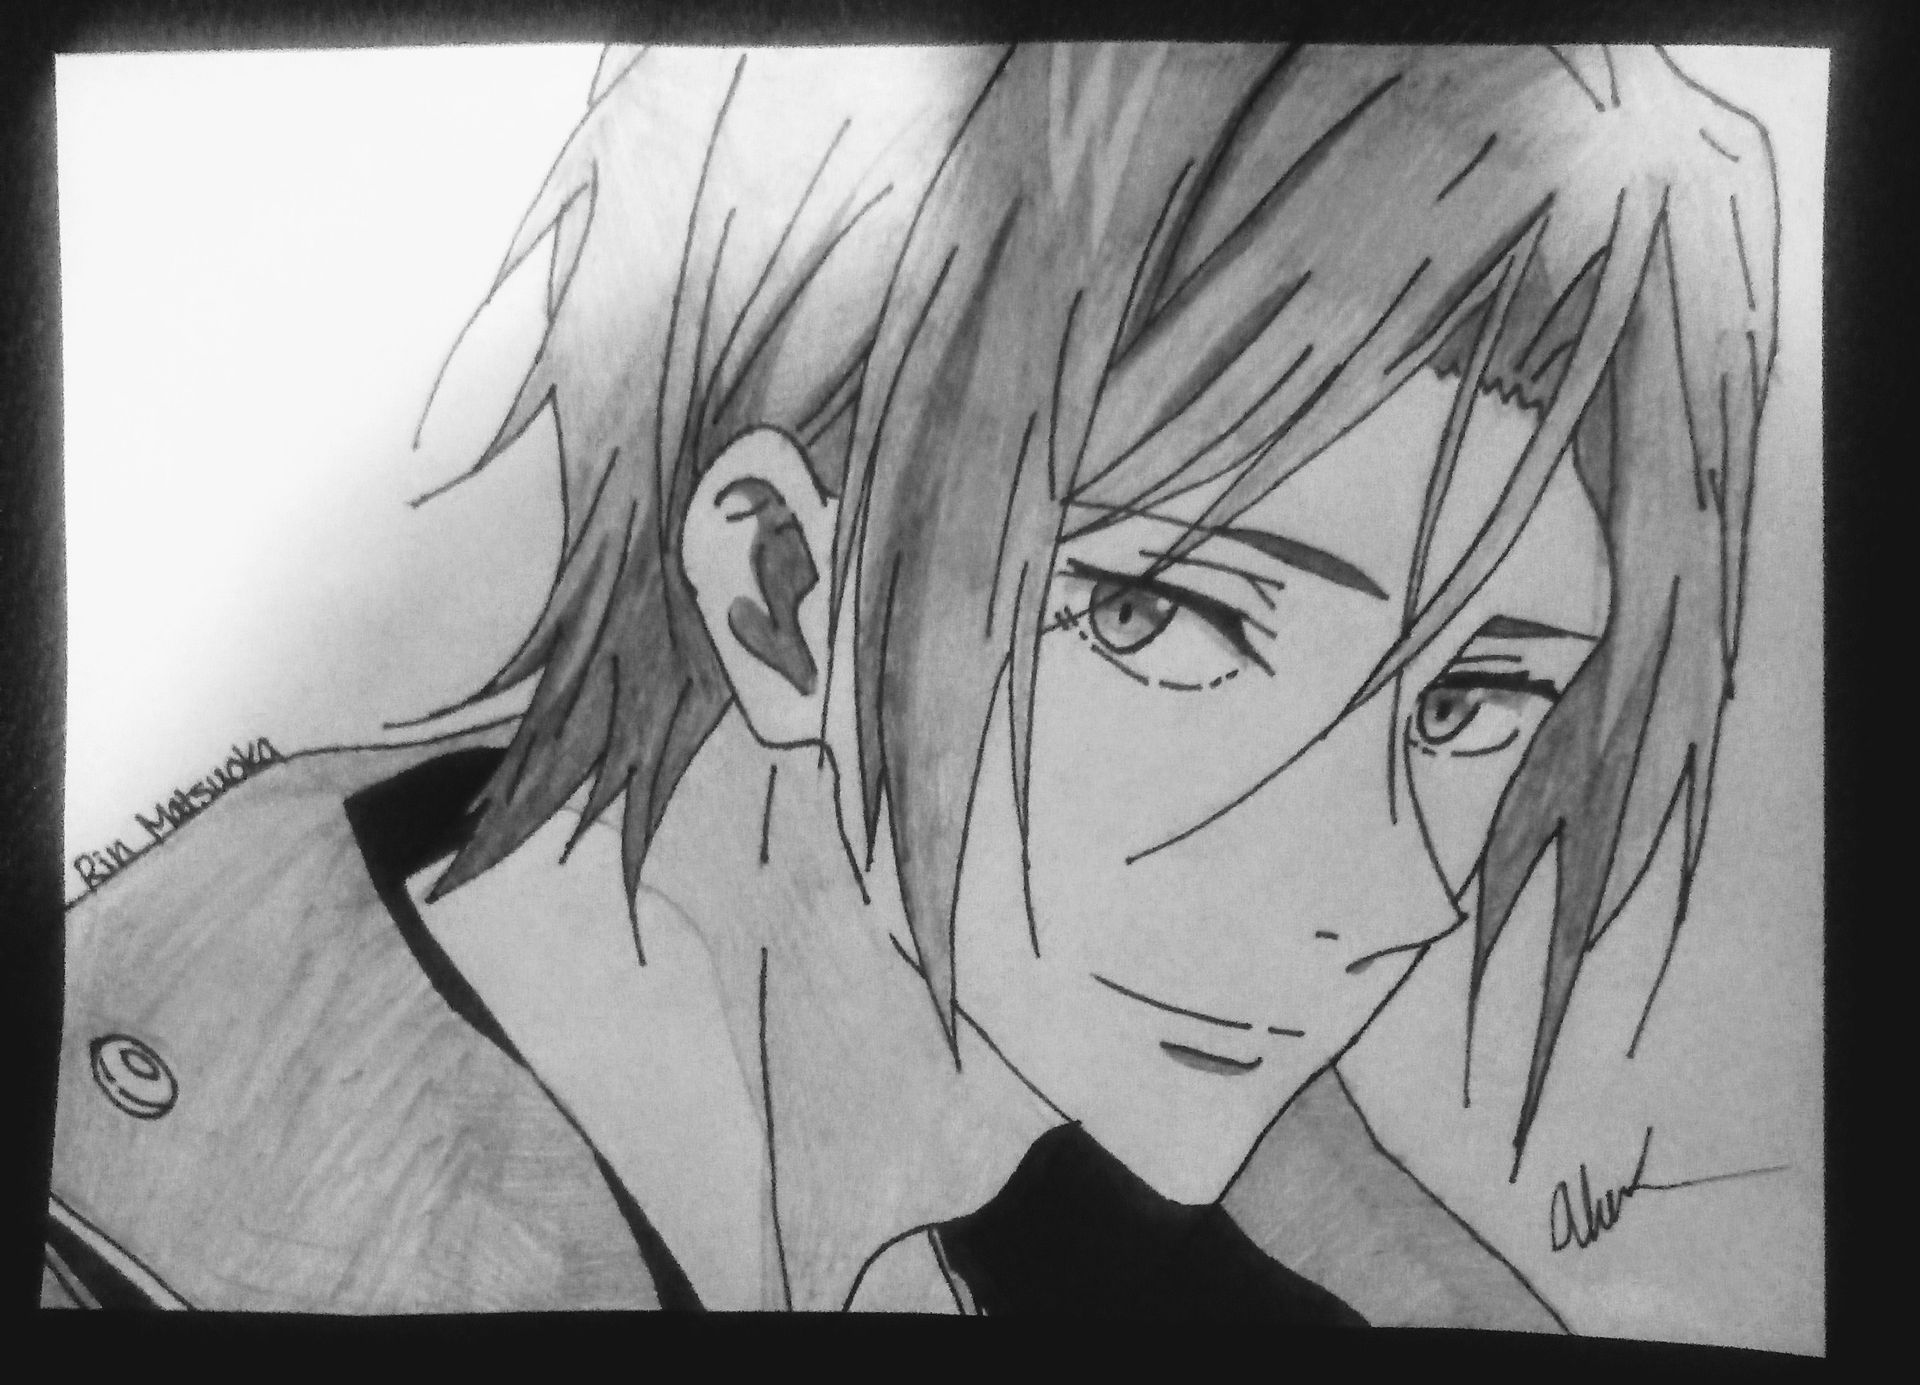 My Drawings Rin Matsuoka Wattpad He went to australia in the hopes of becoming an olympic swimmer but returns to japan and enrolls in another school. my drawings rin matsuoka wattpad